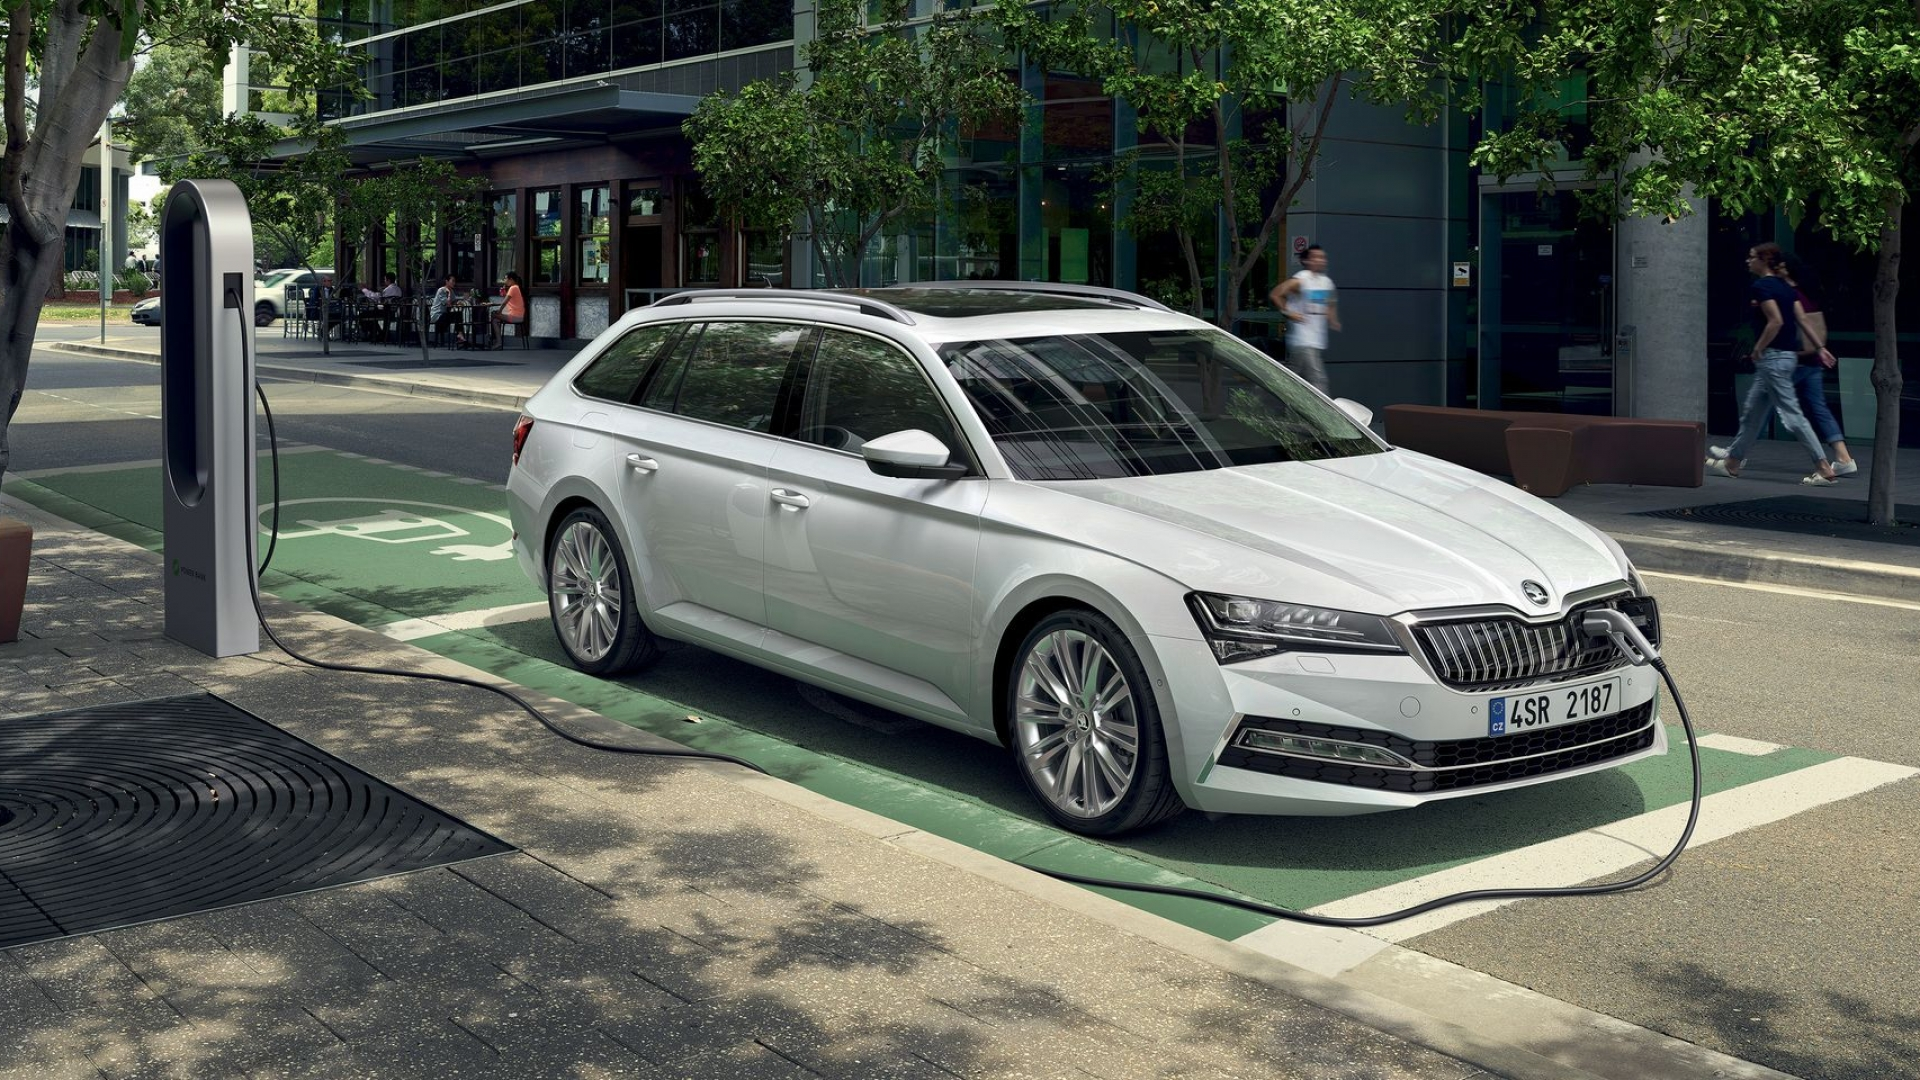 Superb W Executive Plug-In Hybrid